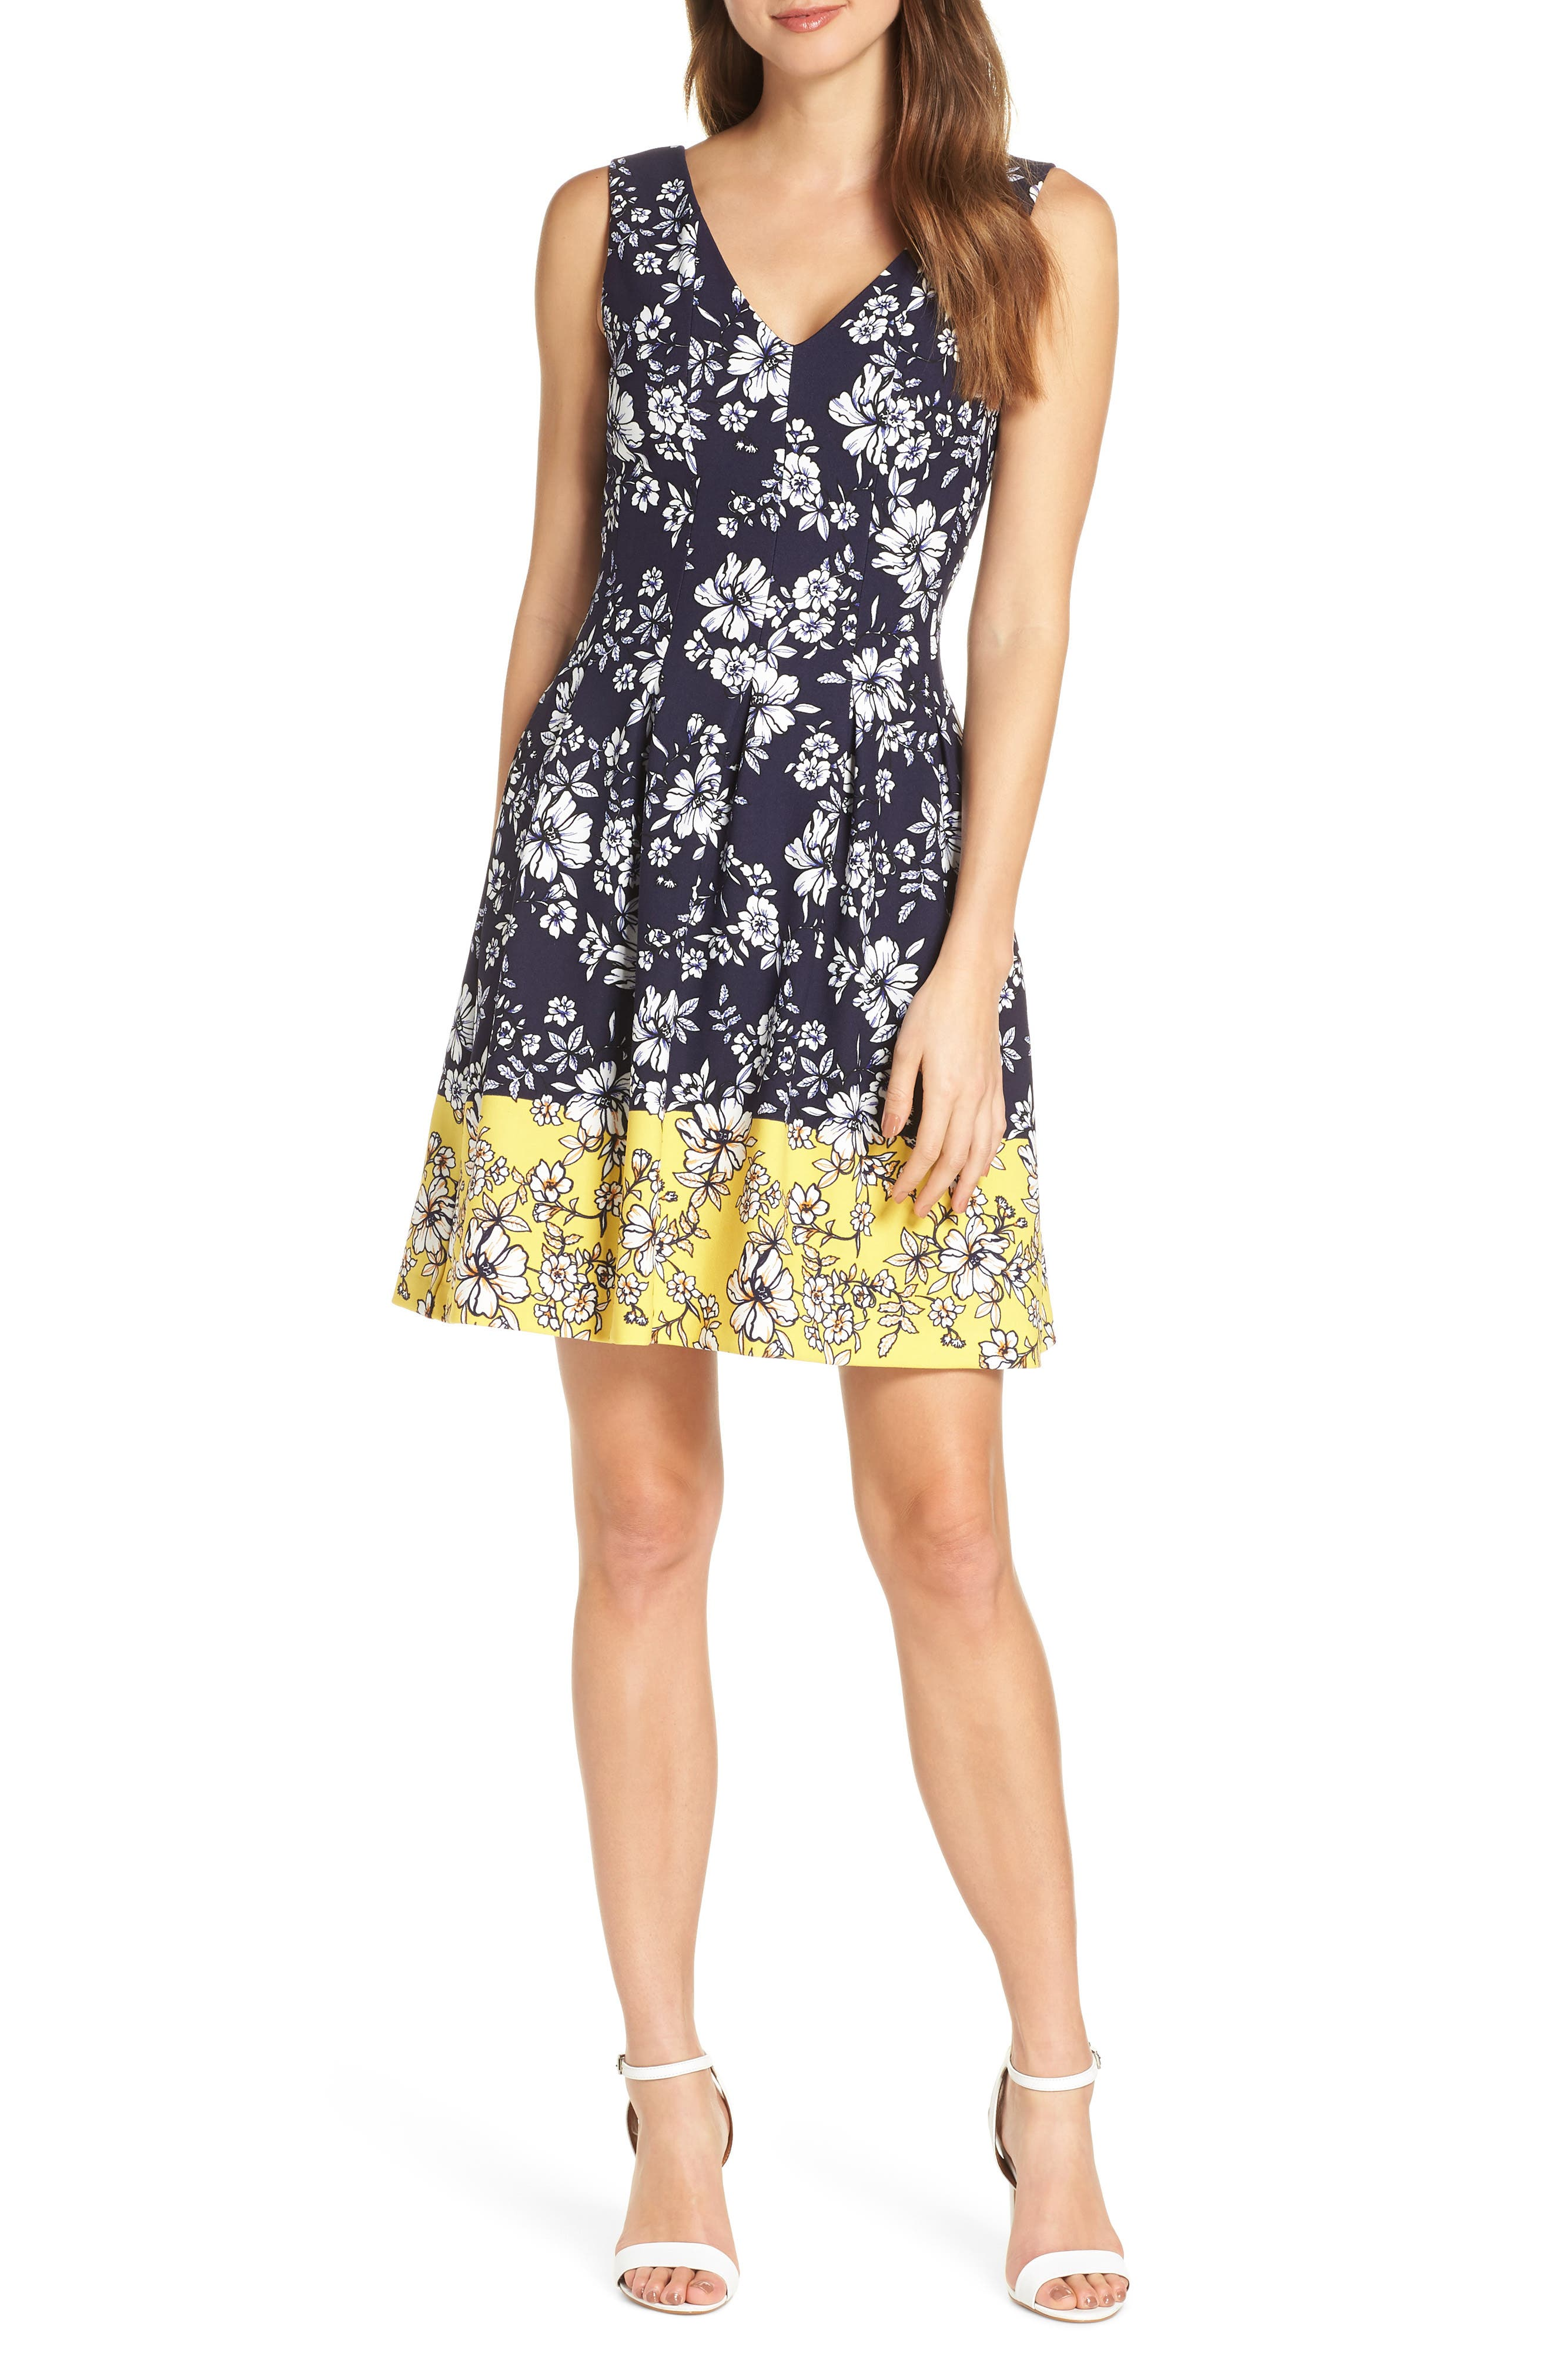 VINCE CAMUTO Floral Print Pleated Fit & Flare Dress, Main, color, NAVY/ YELLOW